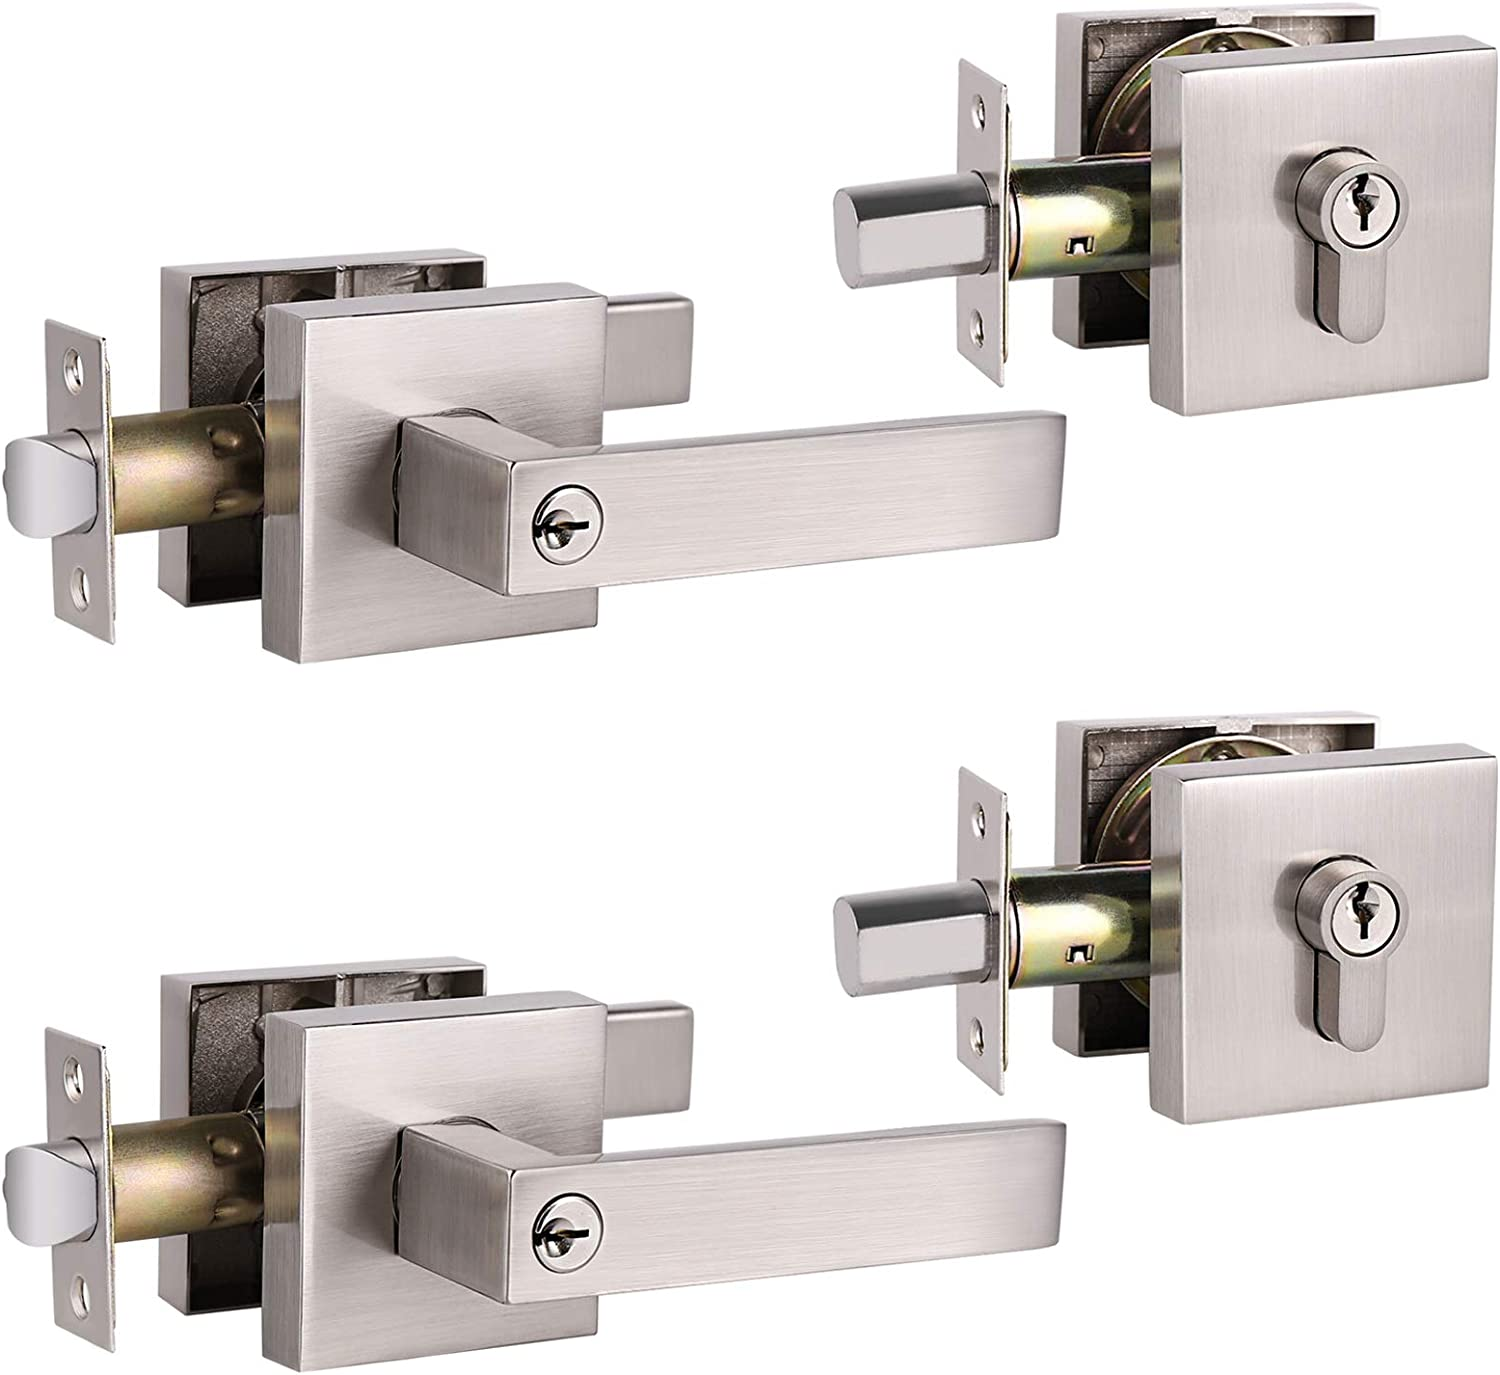 Attention brand Set of 2 GOBEKOR Square Keyed-Alike Entry Locks Door Challenge the lowest price Front Lever